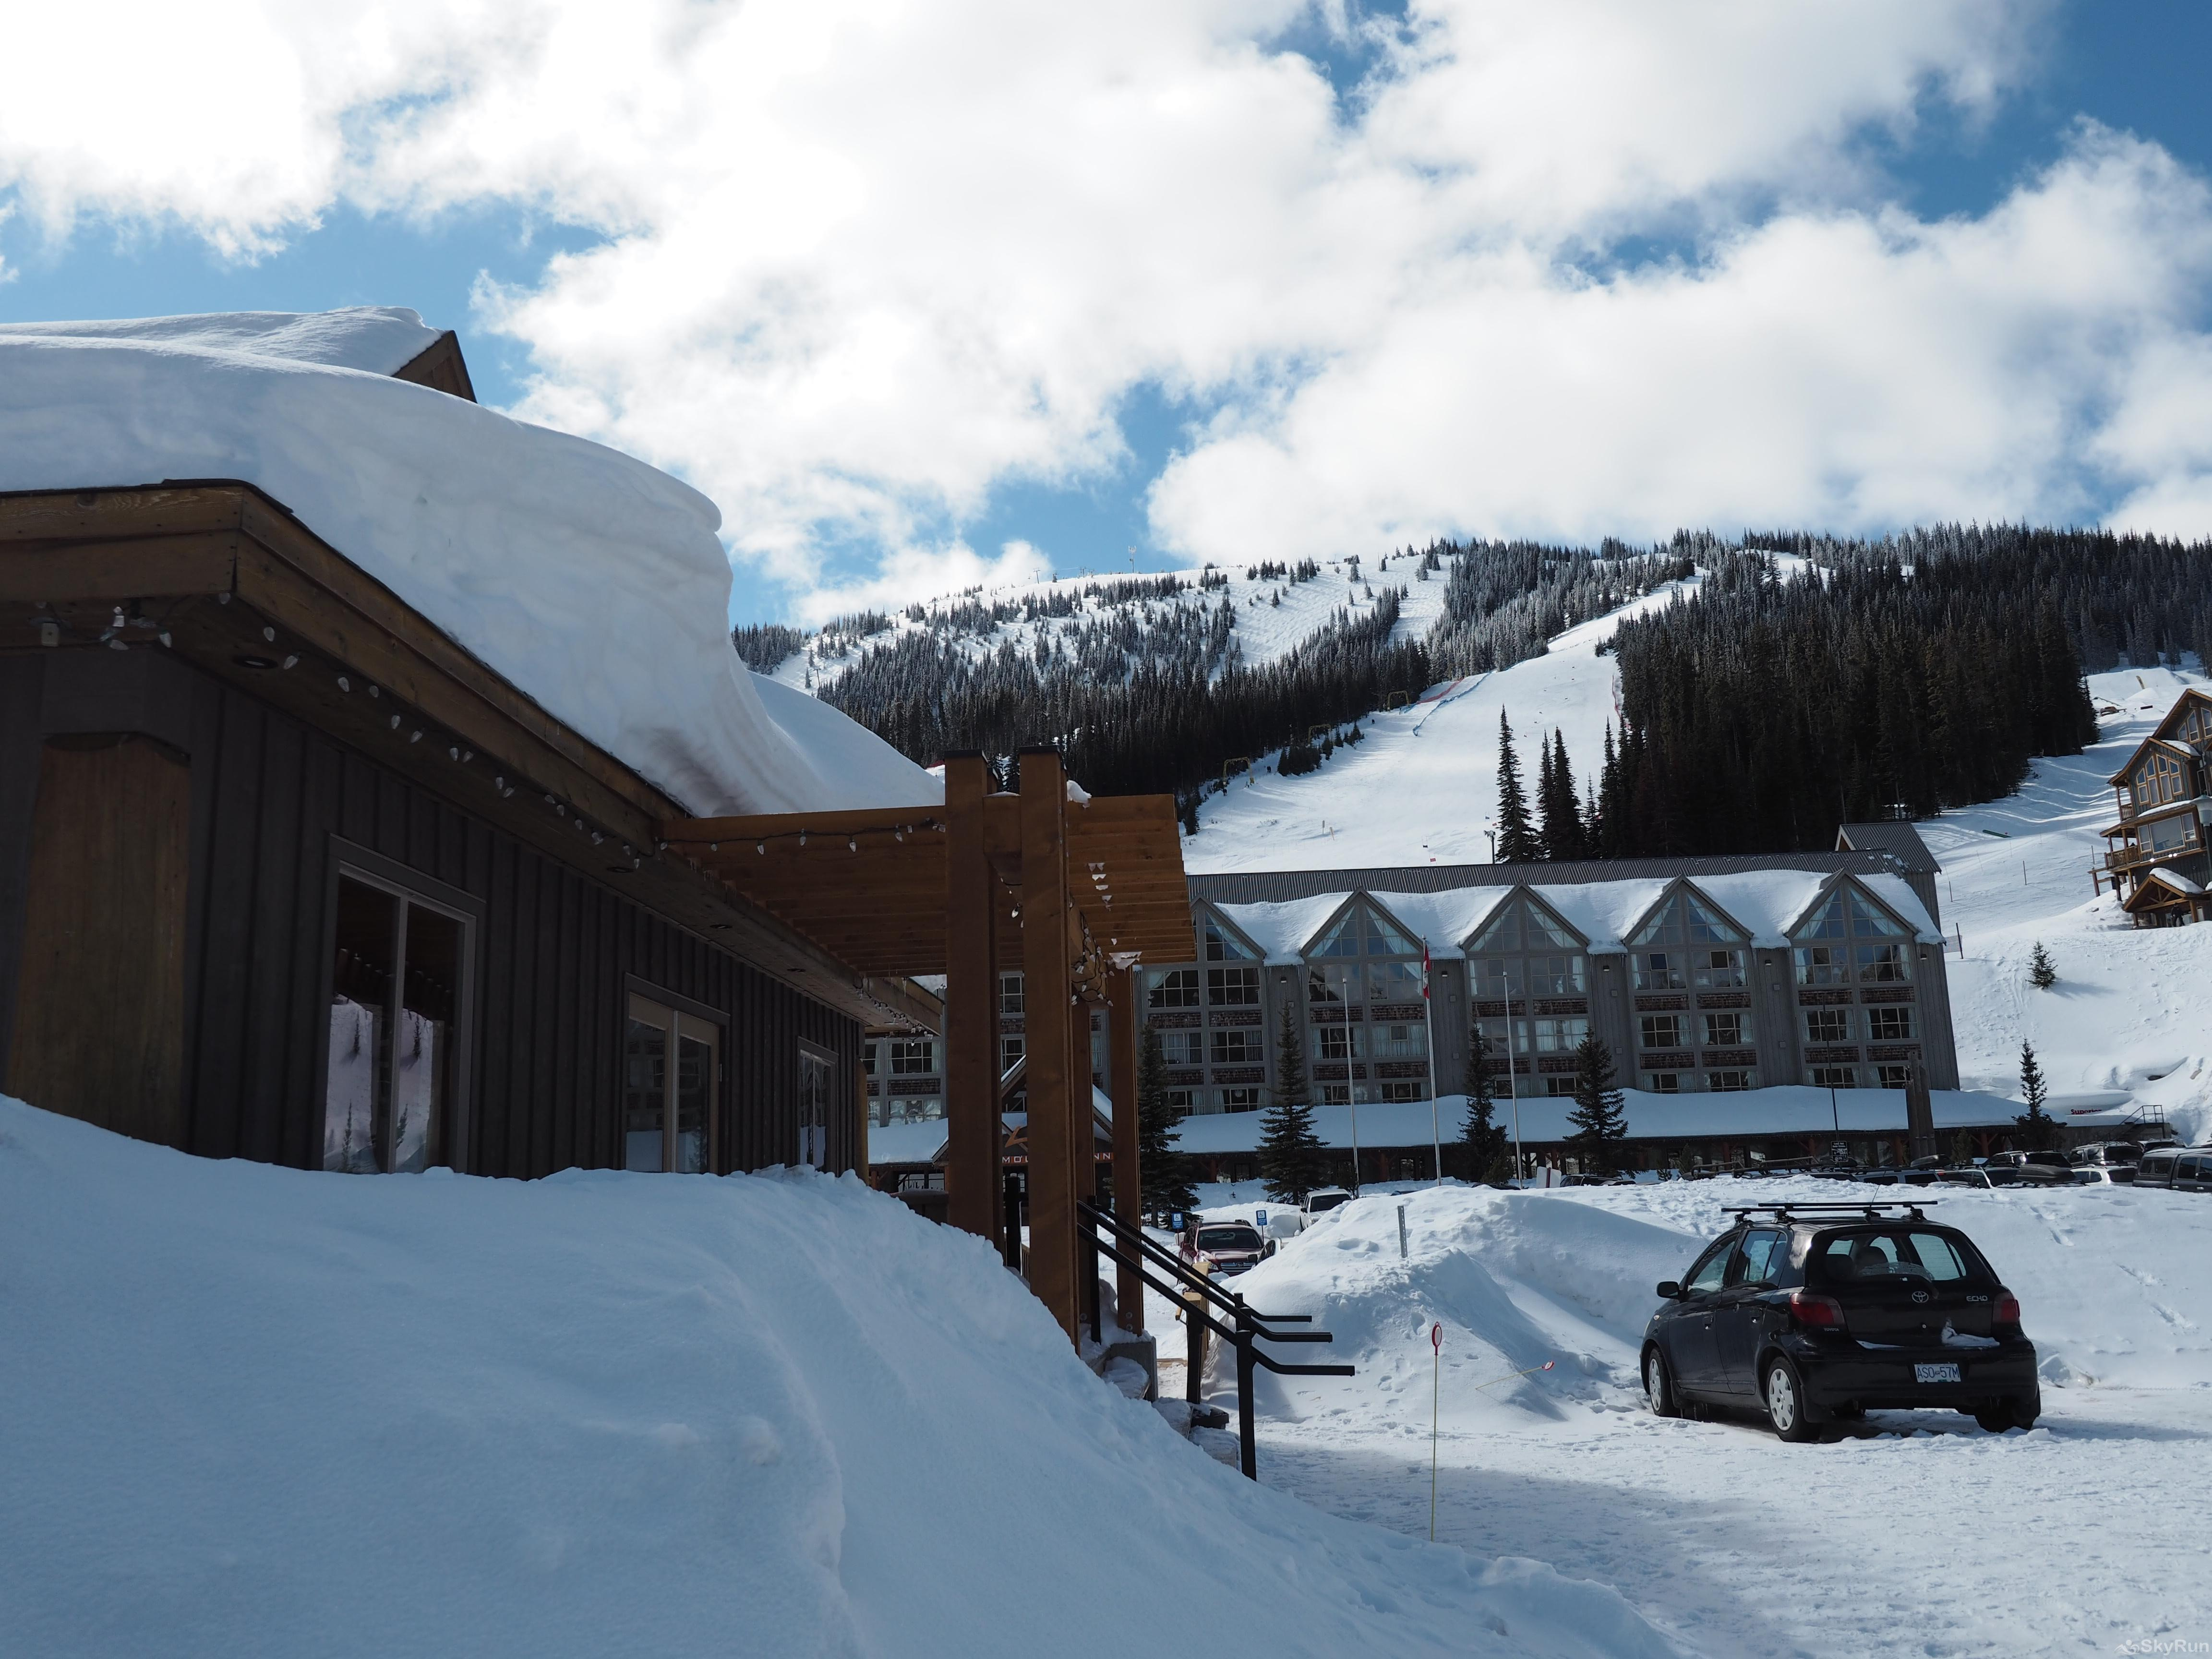 The Apex Mountain Lodge Apex Lodge (Apex Mountain Inn in the background)